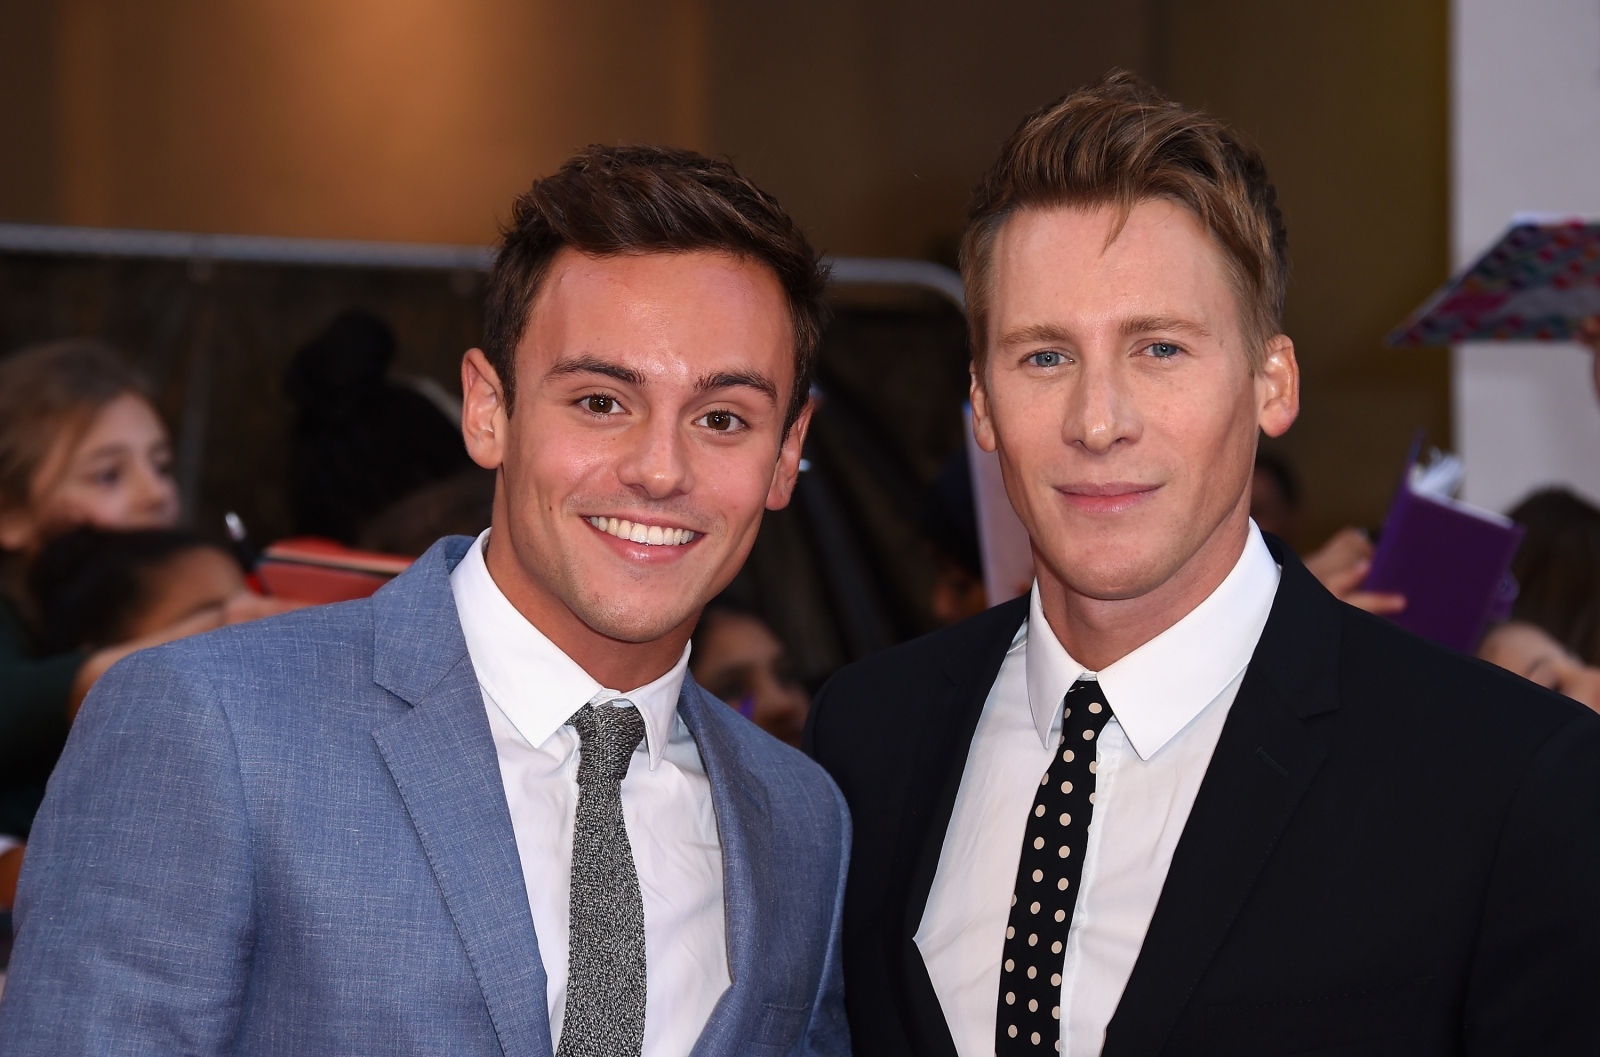 Tom Daly and Dustin Lance Black